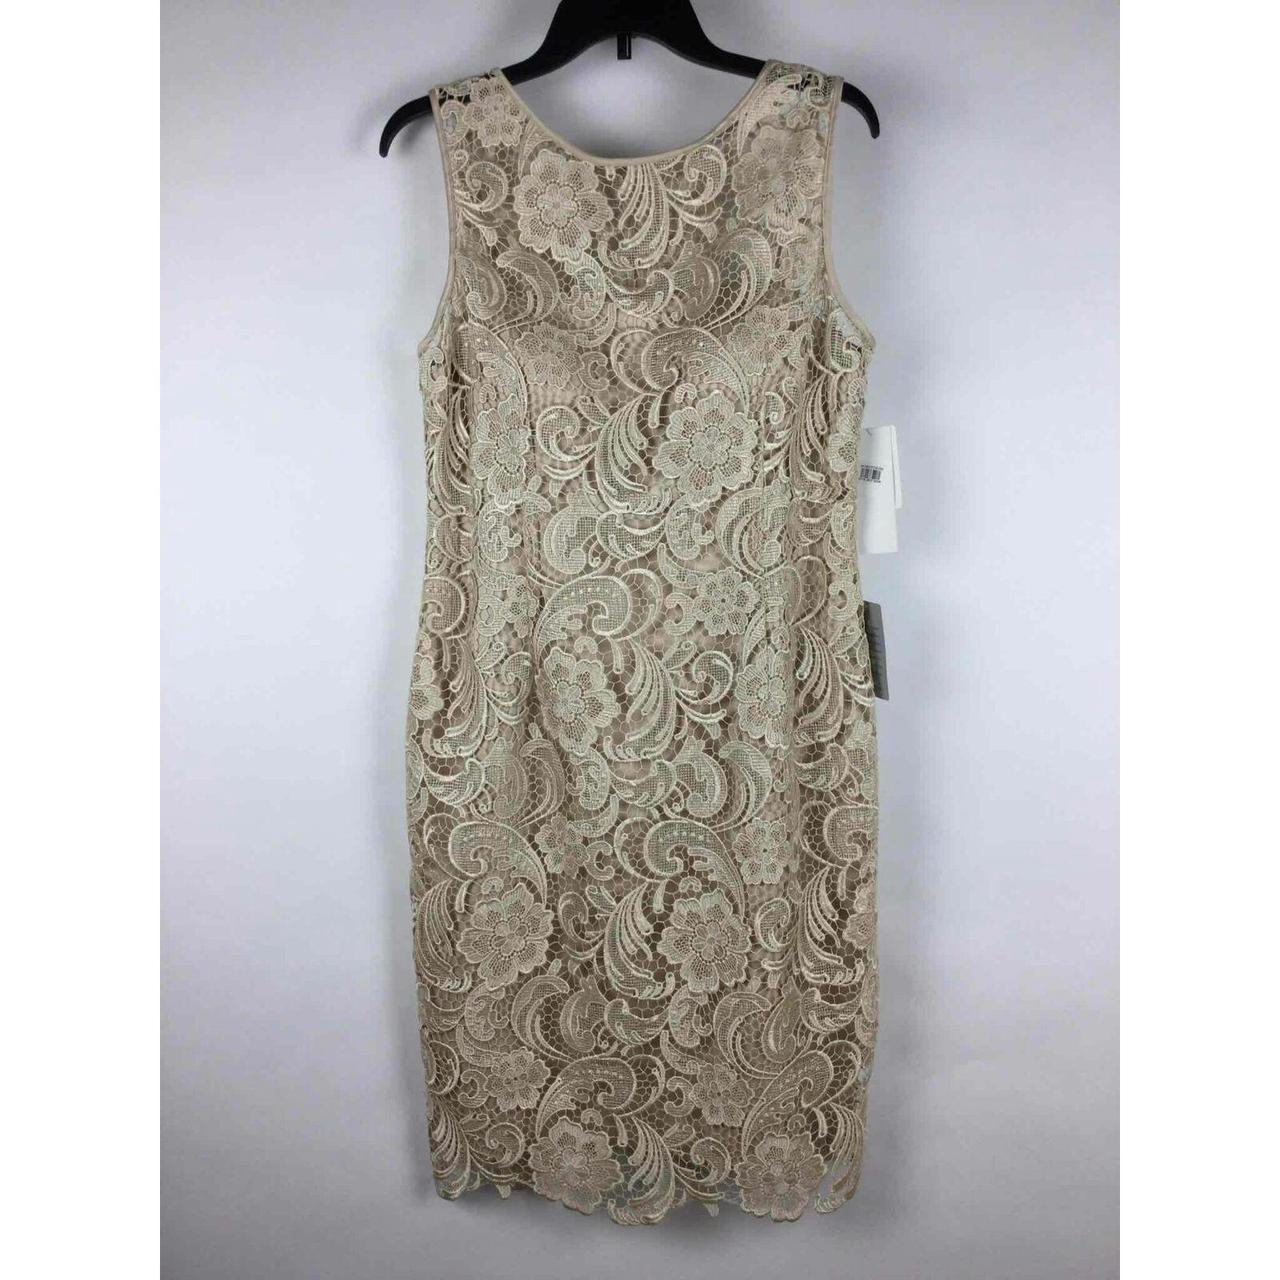 Product Image 1 - NWT Adrianna Papell Champagne Sleeveless